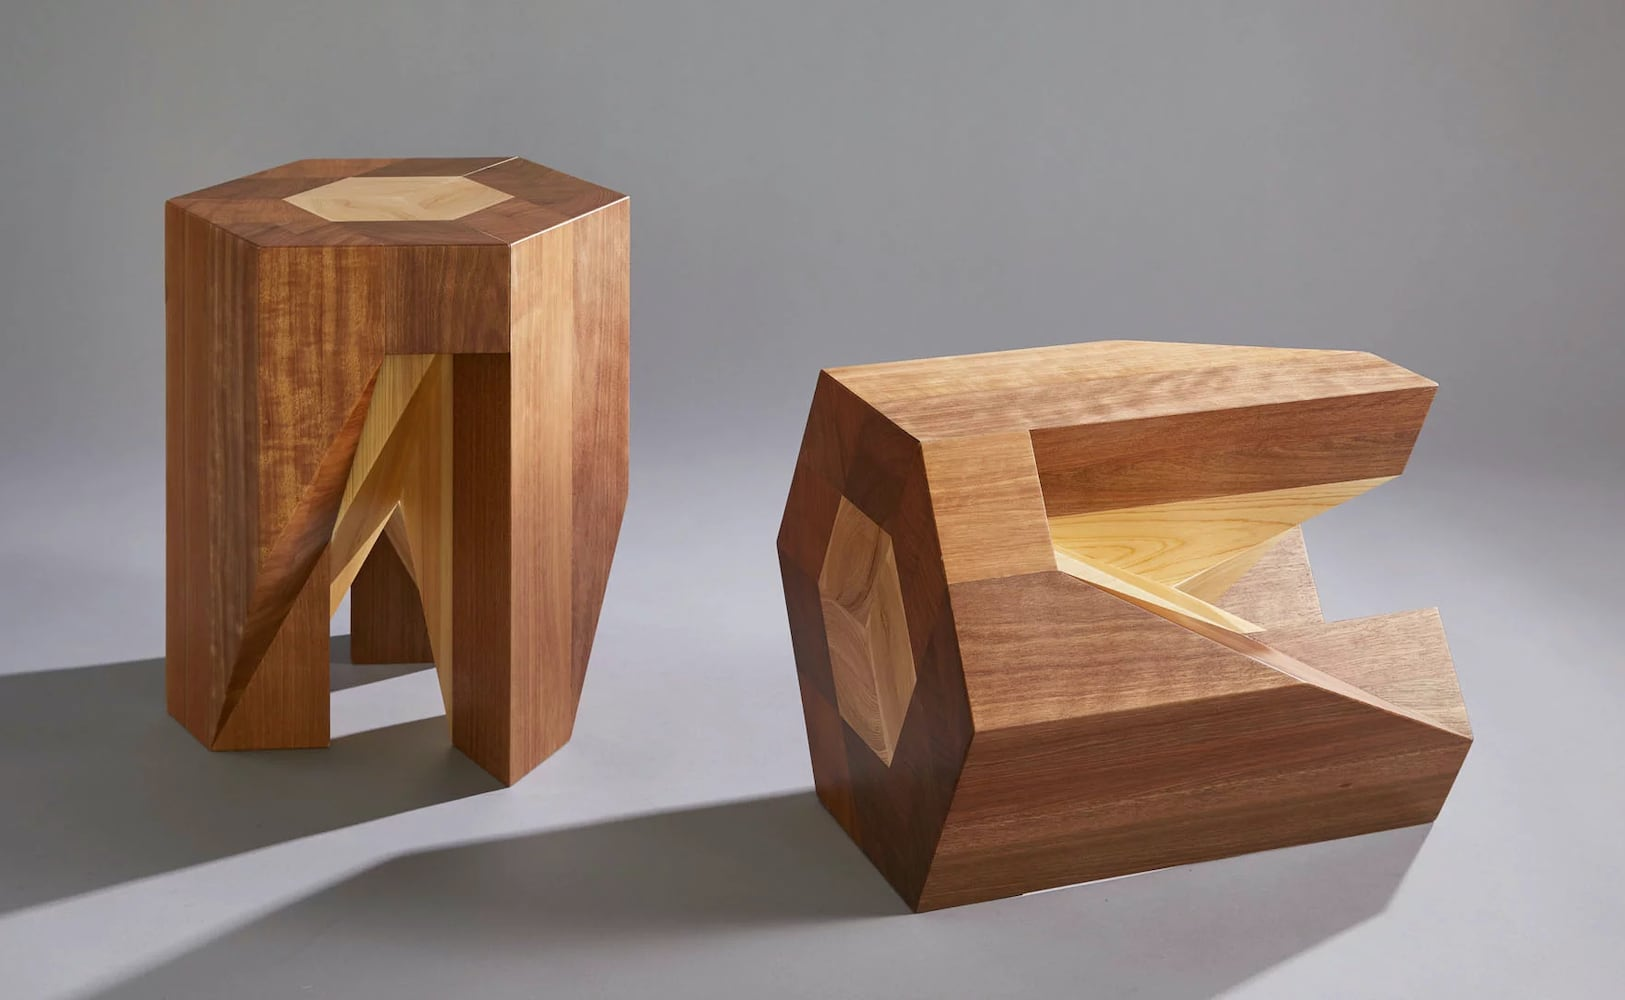 Yosegi Japanese Nesting Stools fit together like an interlocking puzzle